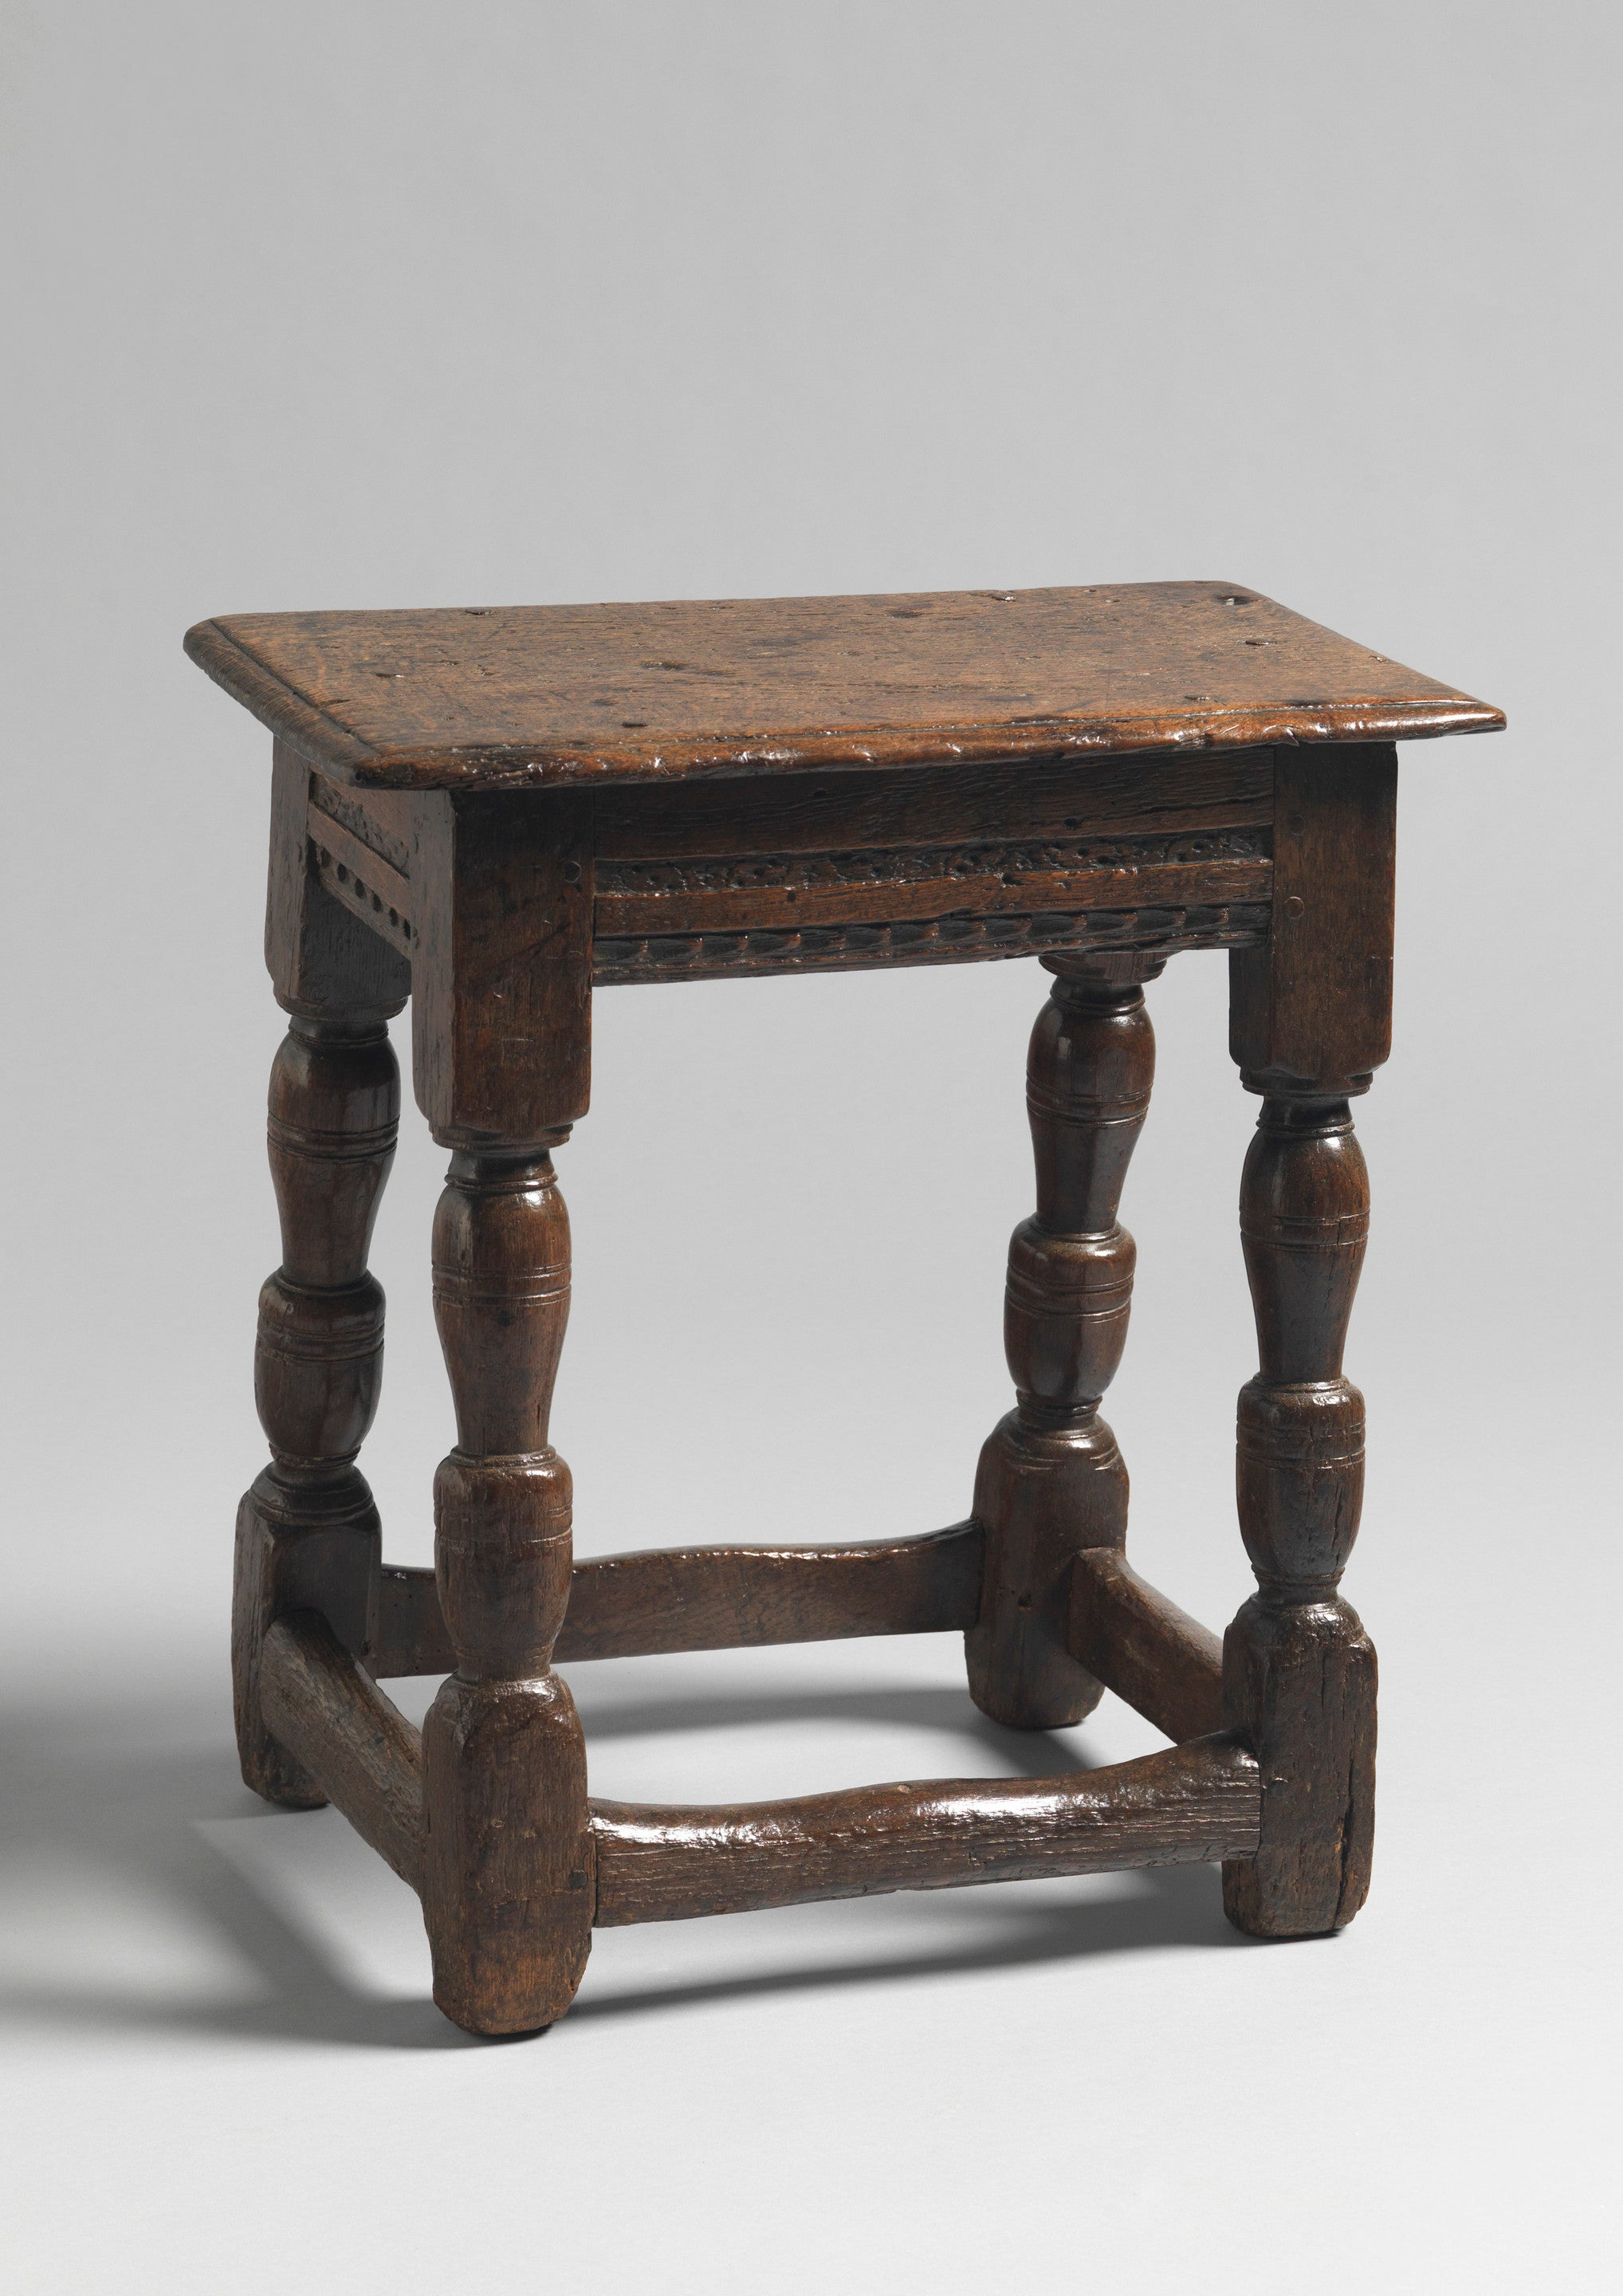 Early Baluster Turned Leg Joint Stool